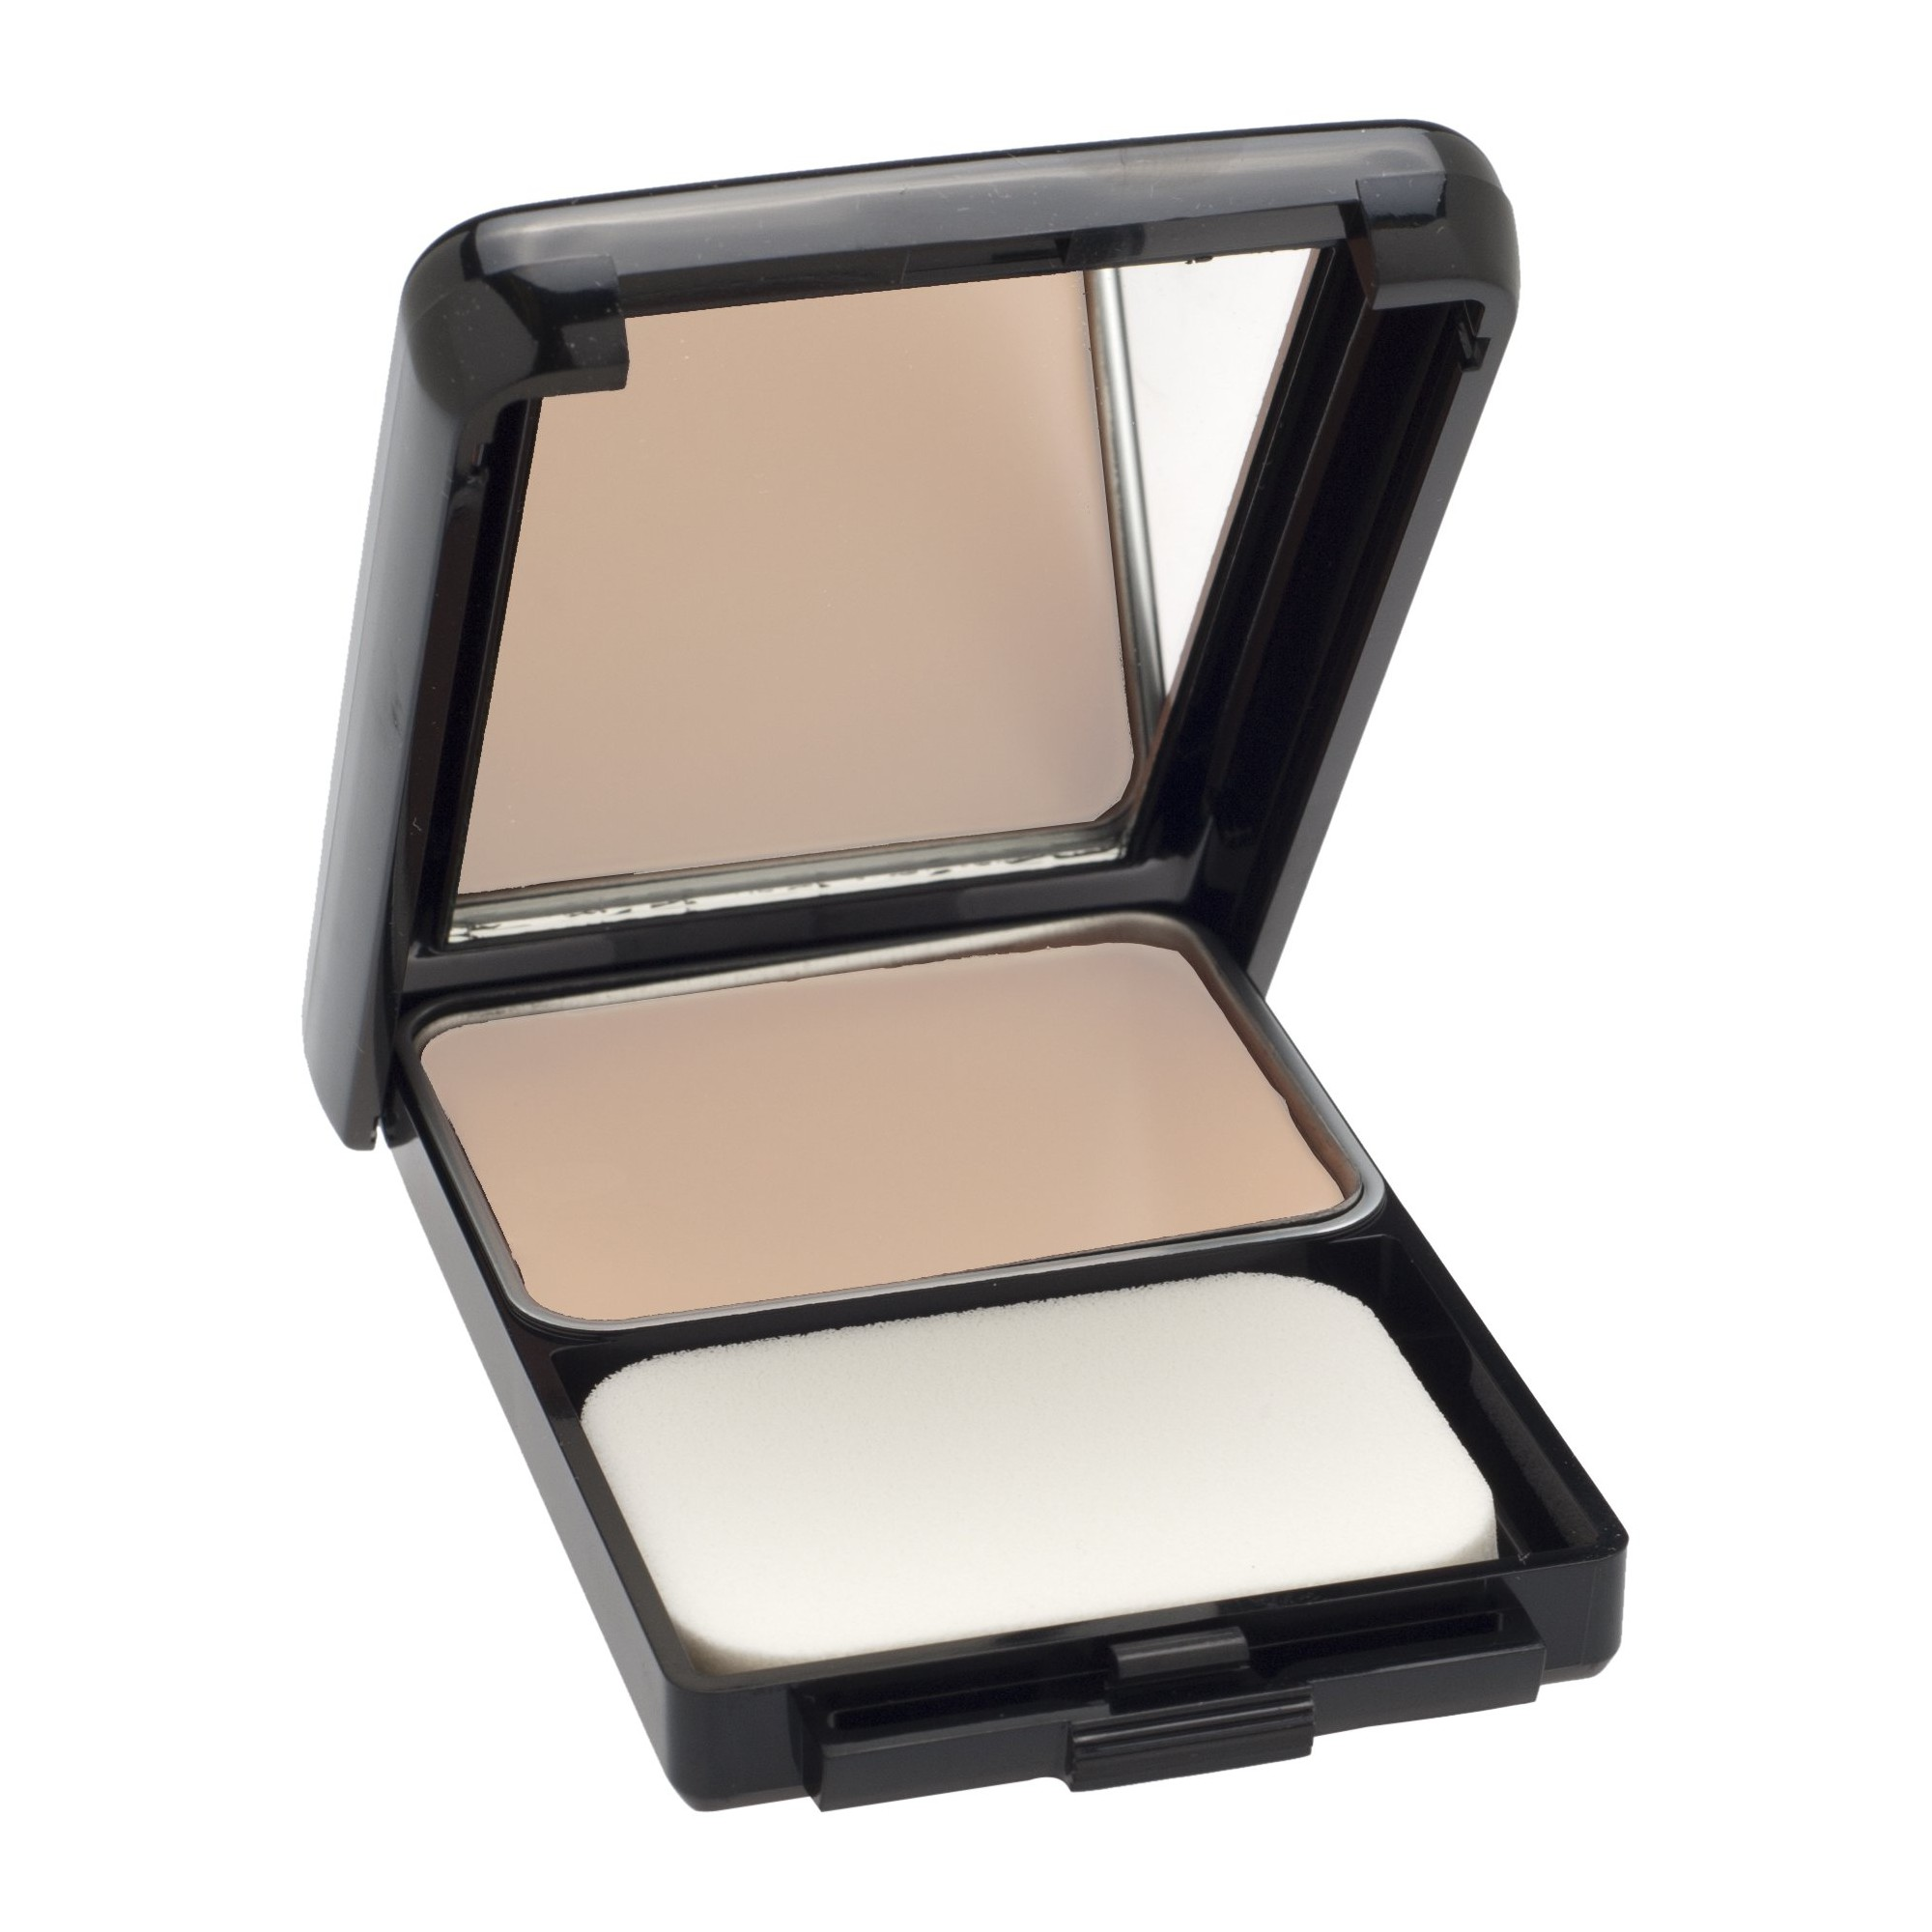 COVERGIRL Ultimate Finish Compact 410 Classic Ivory .4oz